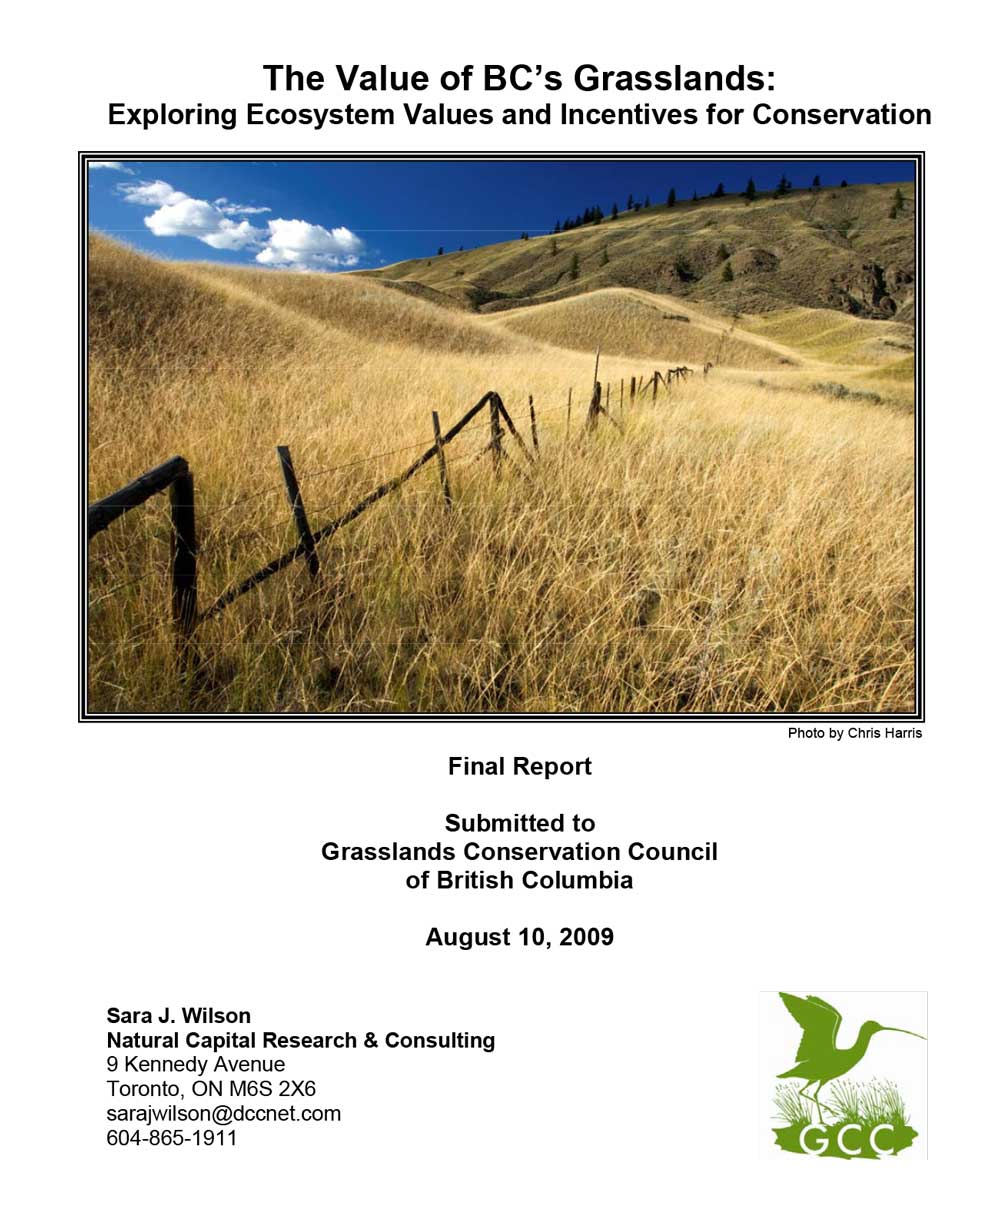 BC Grasslands - The Value of BC Grasslands by Sara Wilson 21 Aug 09